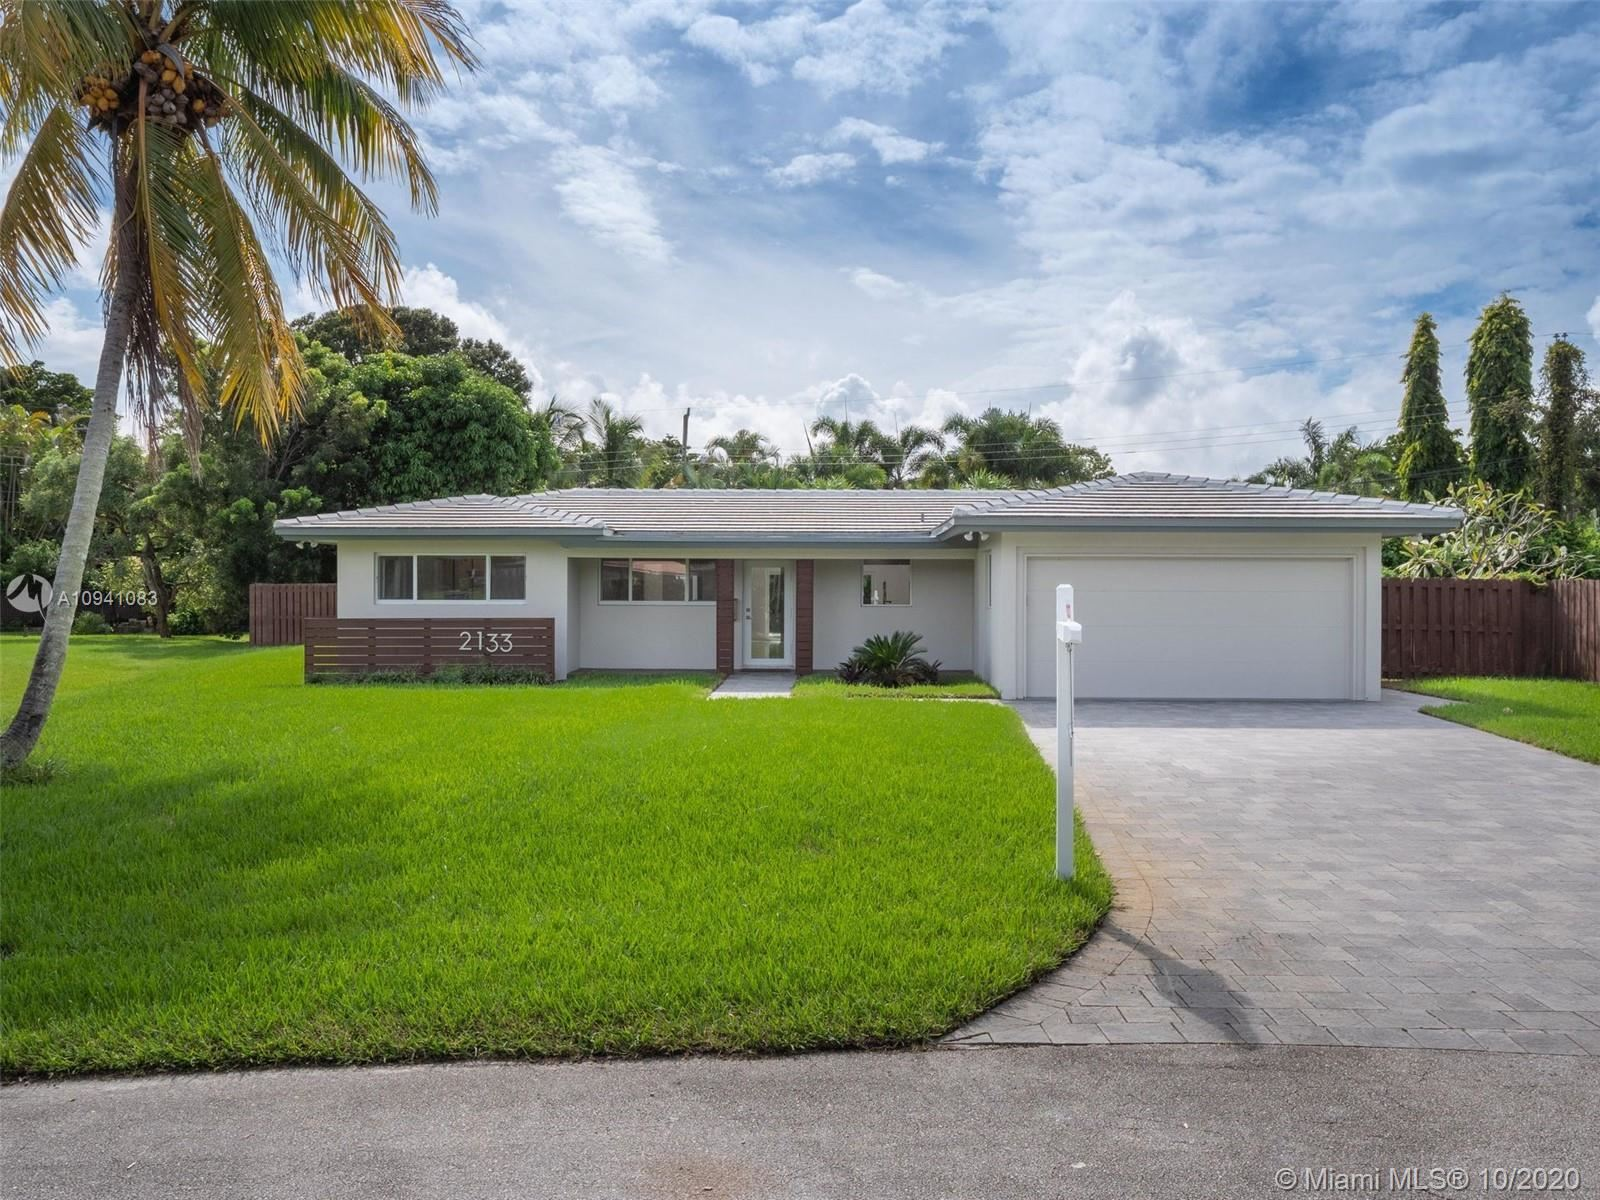 Photo of 2133 NW 4th Ave, Wilton Manors, FL 33311 (MLS # A10941083)